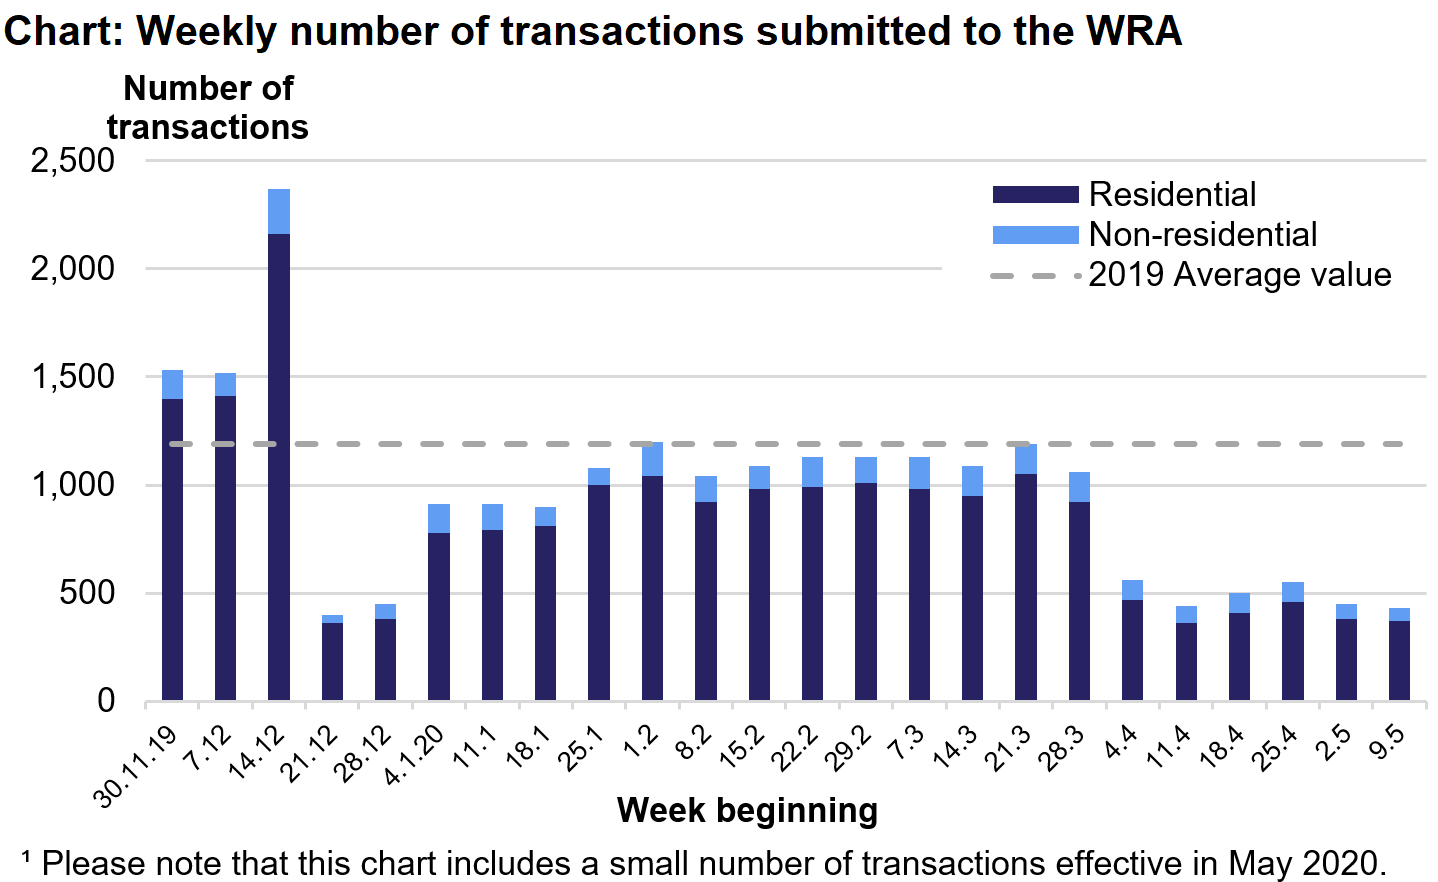 The chart shows the number of residential and non-residential transactions submitted to the WRA each week from December 2019 to May 2020. Please note that this chart includes a small number of transactions effective in May 2020.